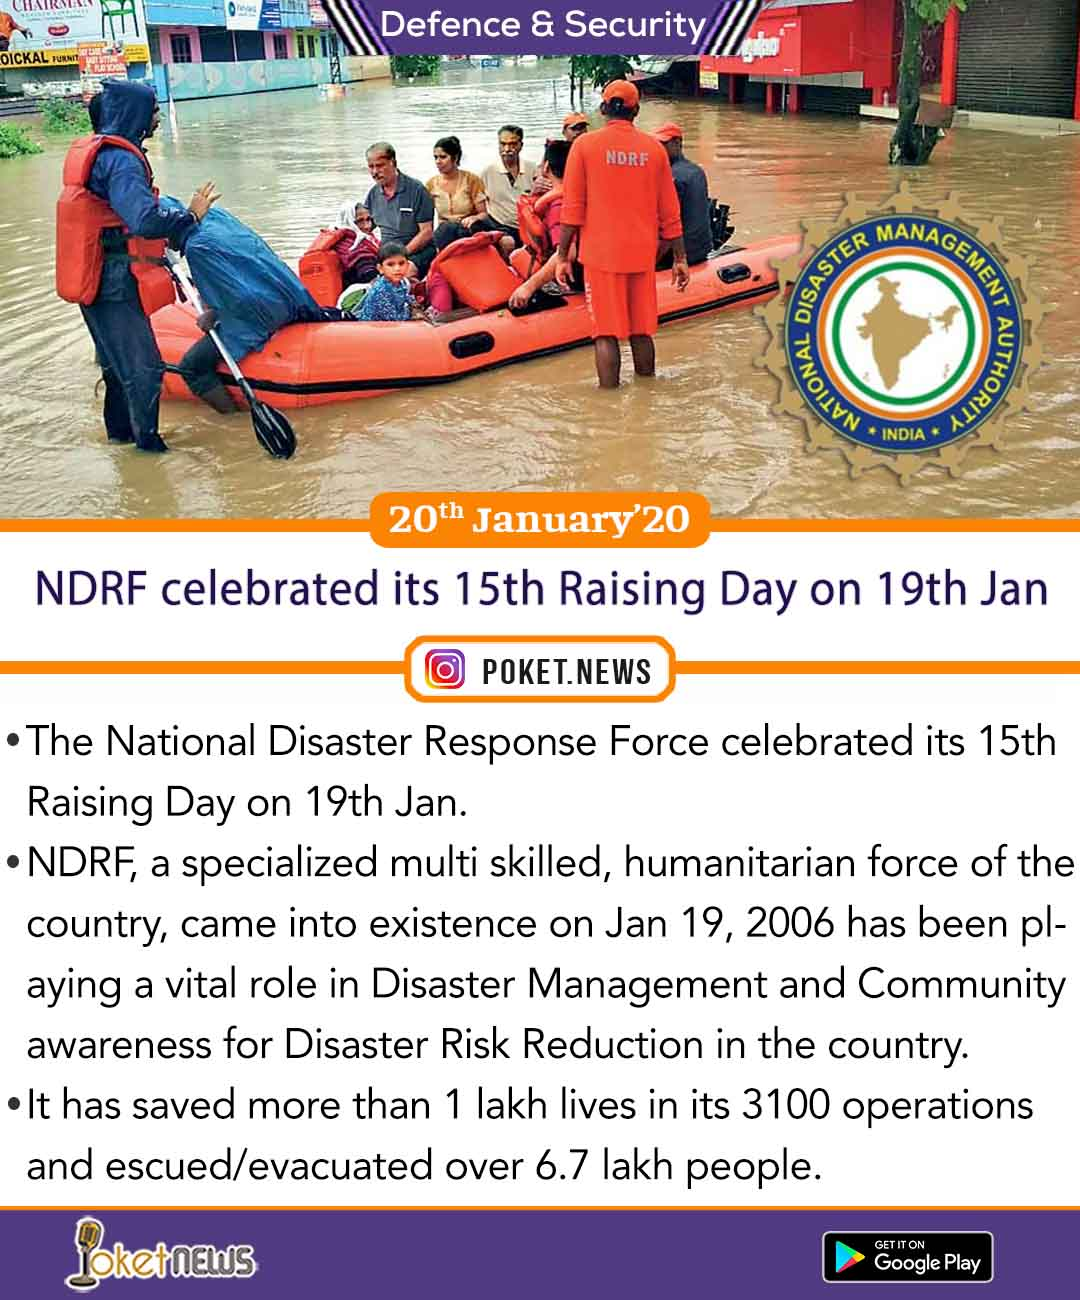 NDRF celebrated its 15th Raising Day on 19th Jan